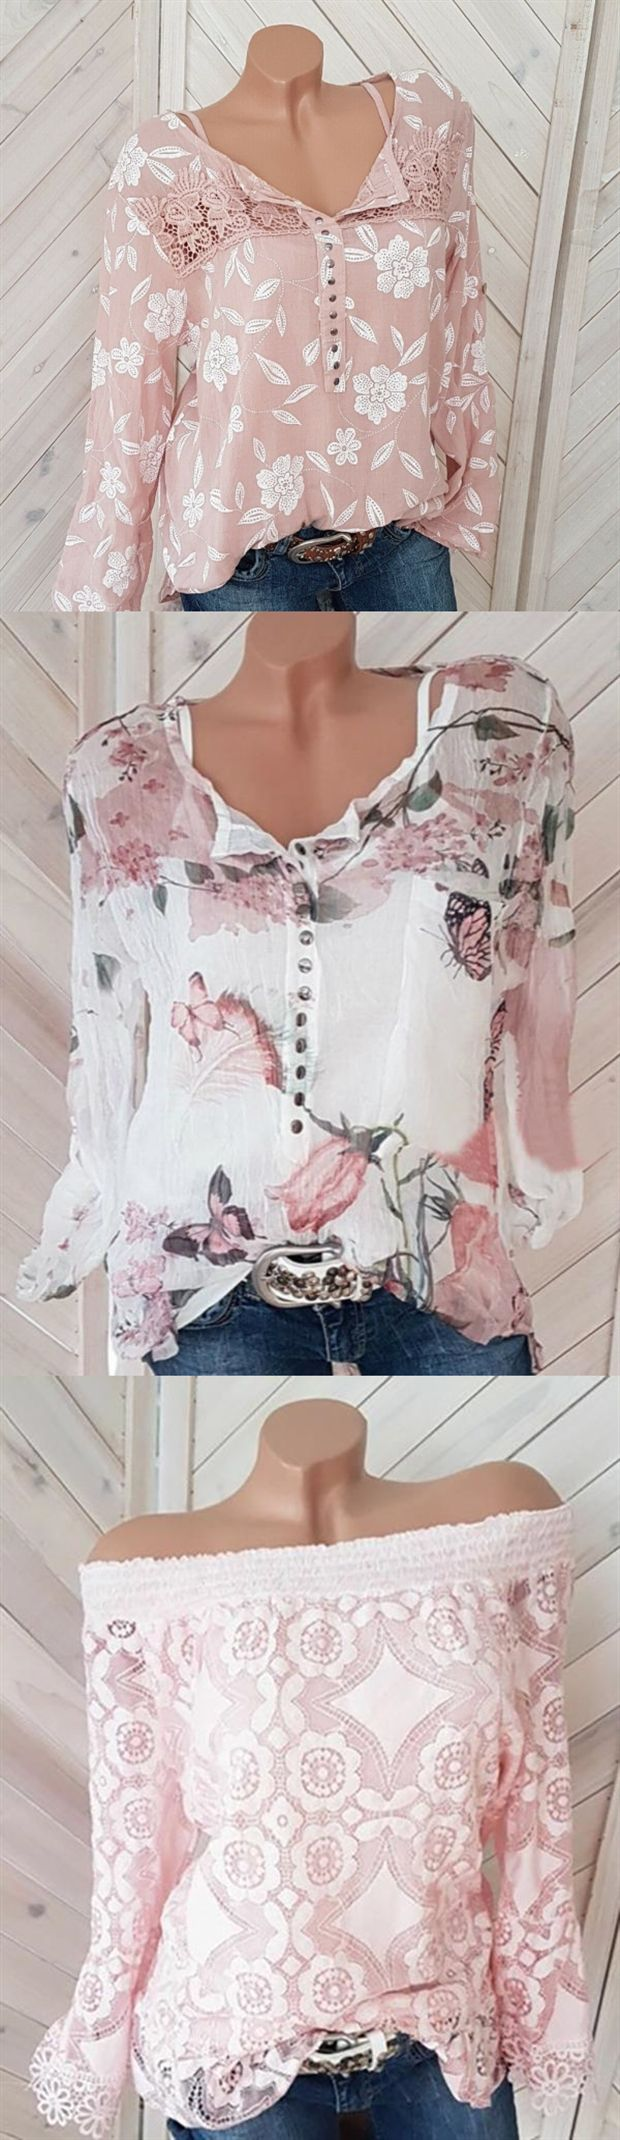 Hot Selling ! 100+ Fashion Spring Long Sleeve Blouses & Shirts❤ Buy More and Save More >> SHOP NOW